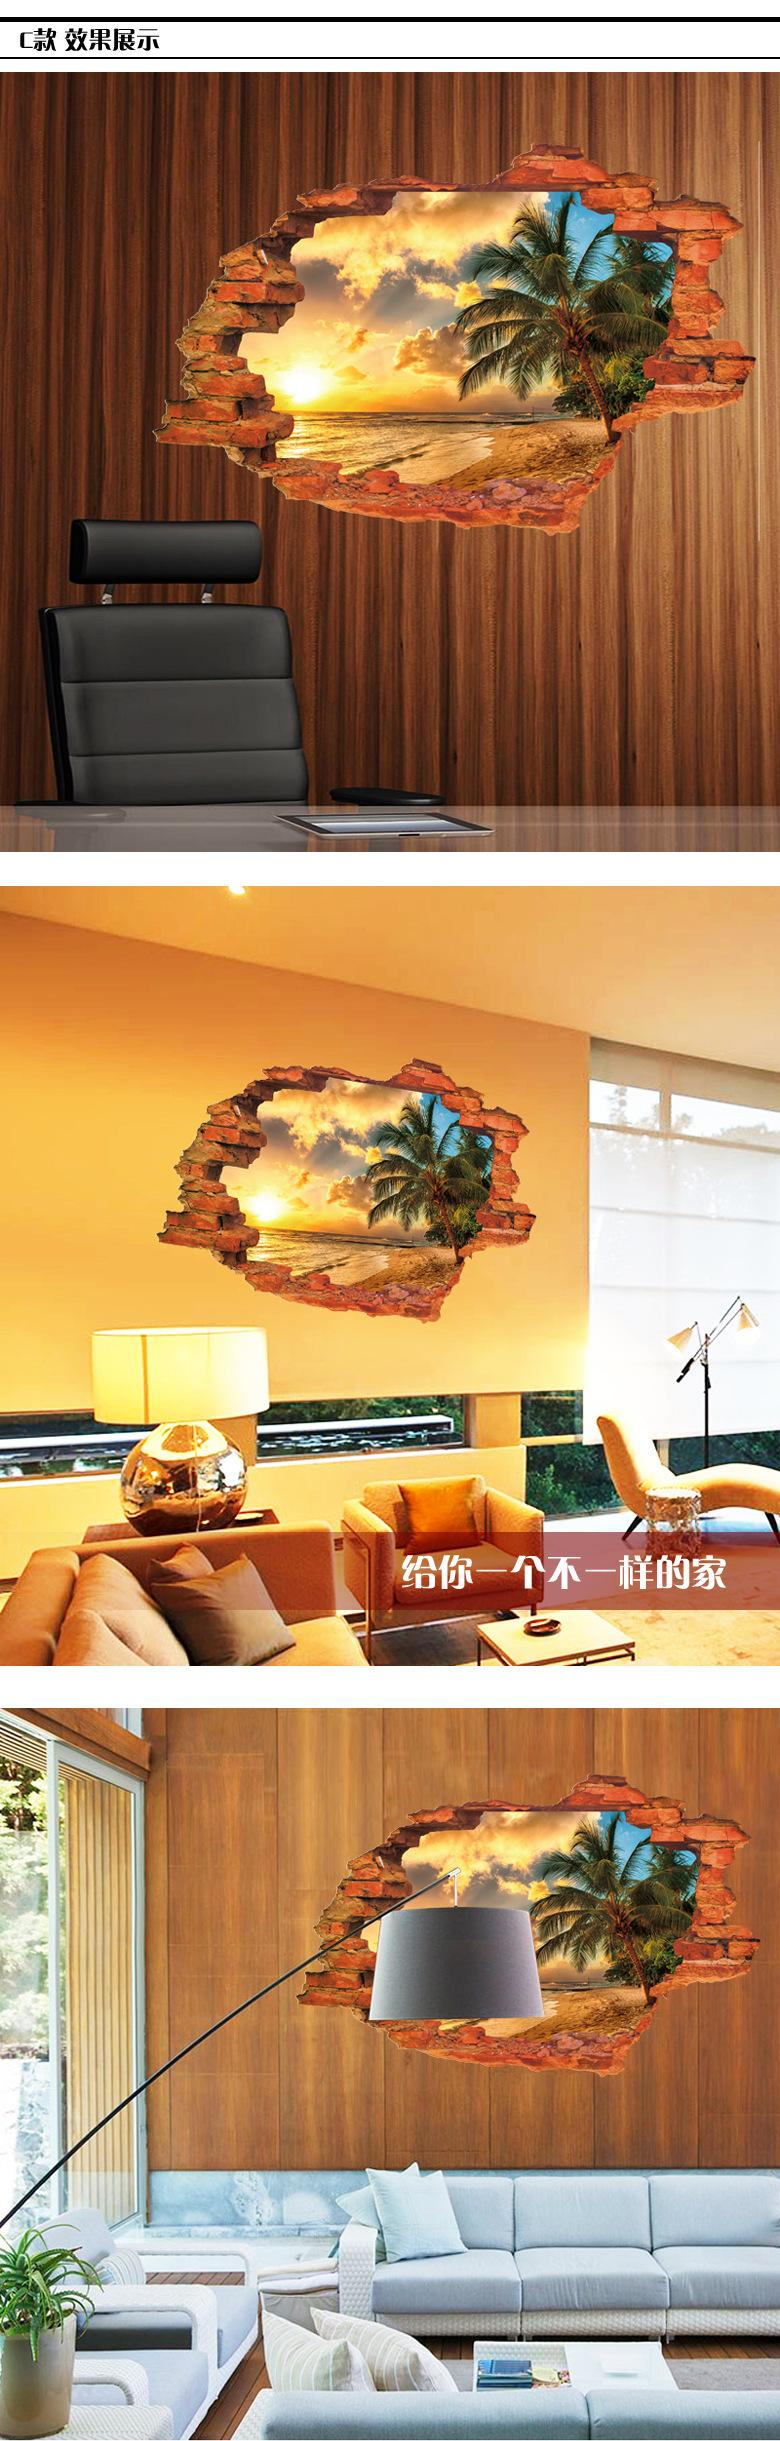 HTB1Kus5KXXXXXaXXpXXq6xXFXXXY - Free shipping:3D Broken Wall Sunset Scenery Seascape Island Coconut Trees Household Adornment Can Remove The Wall Stickers